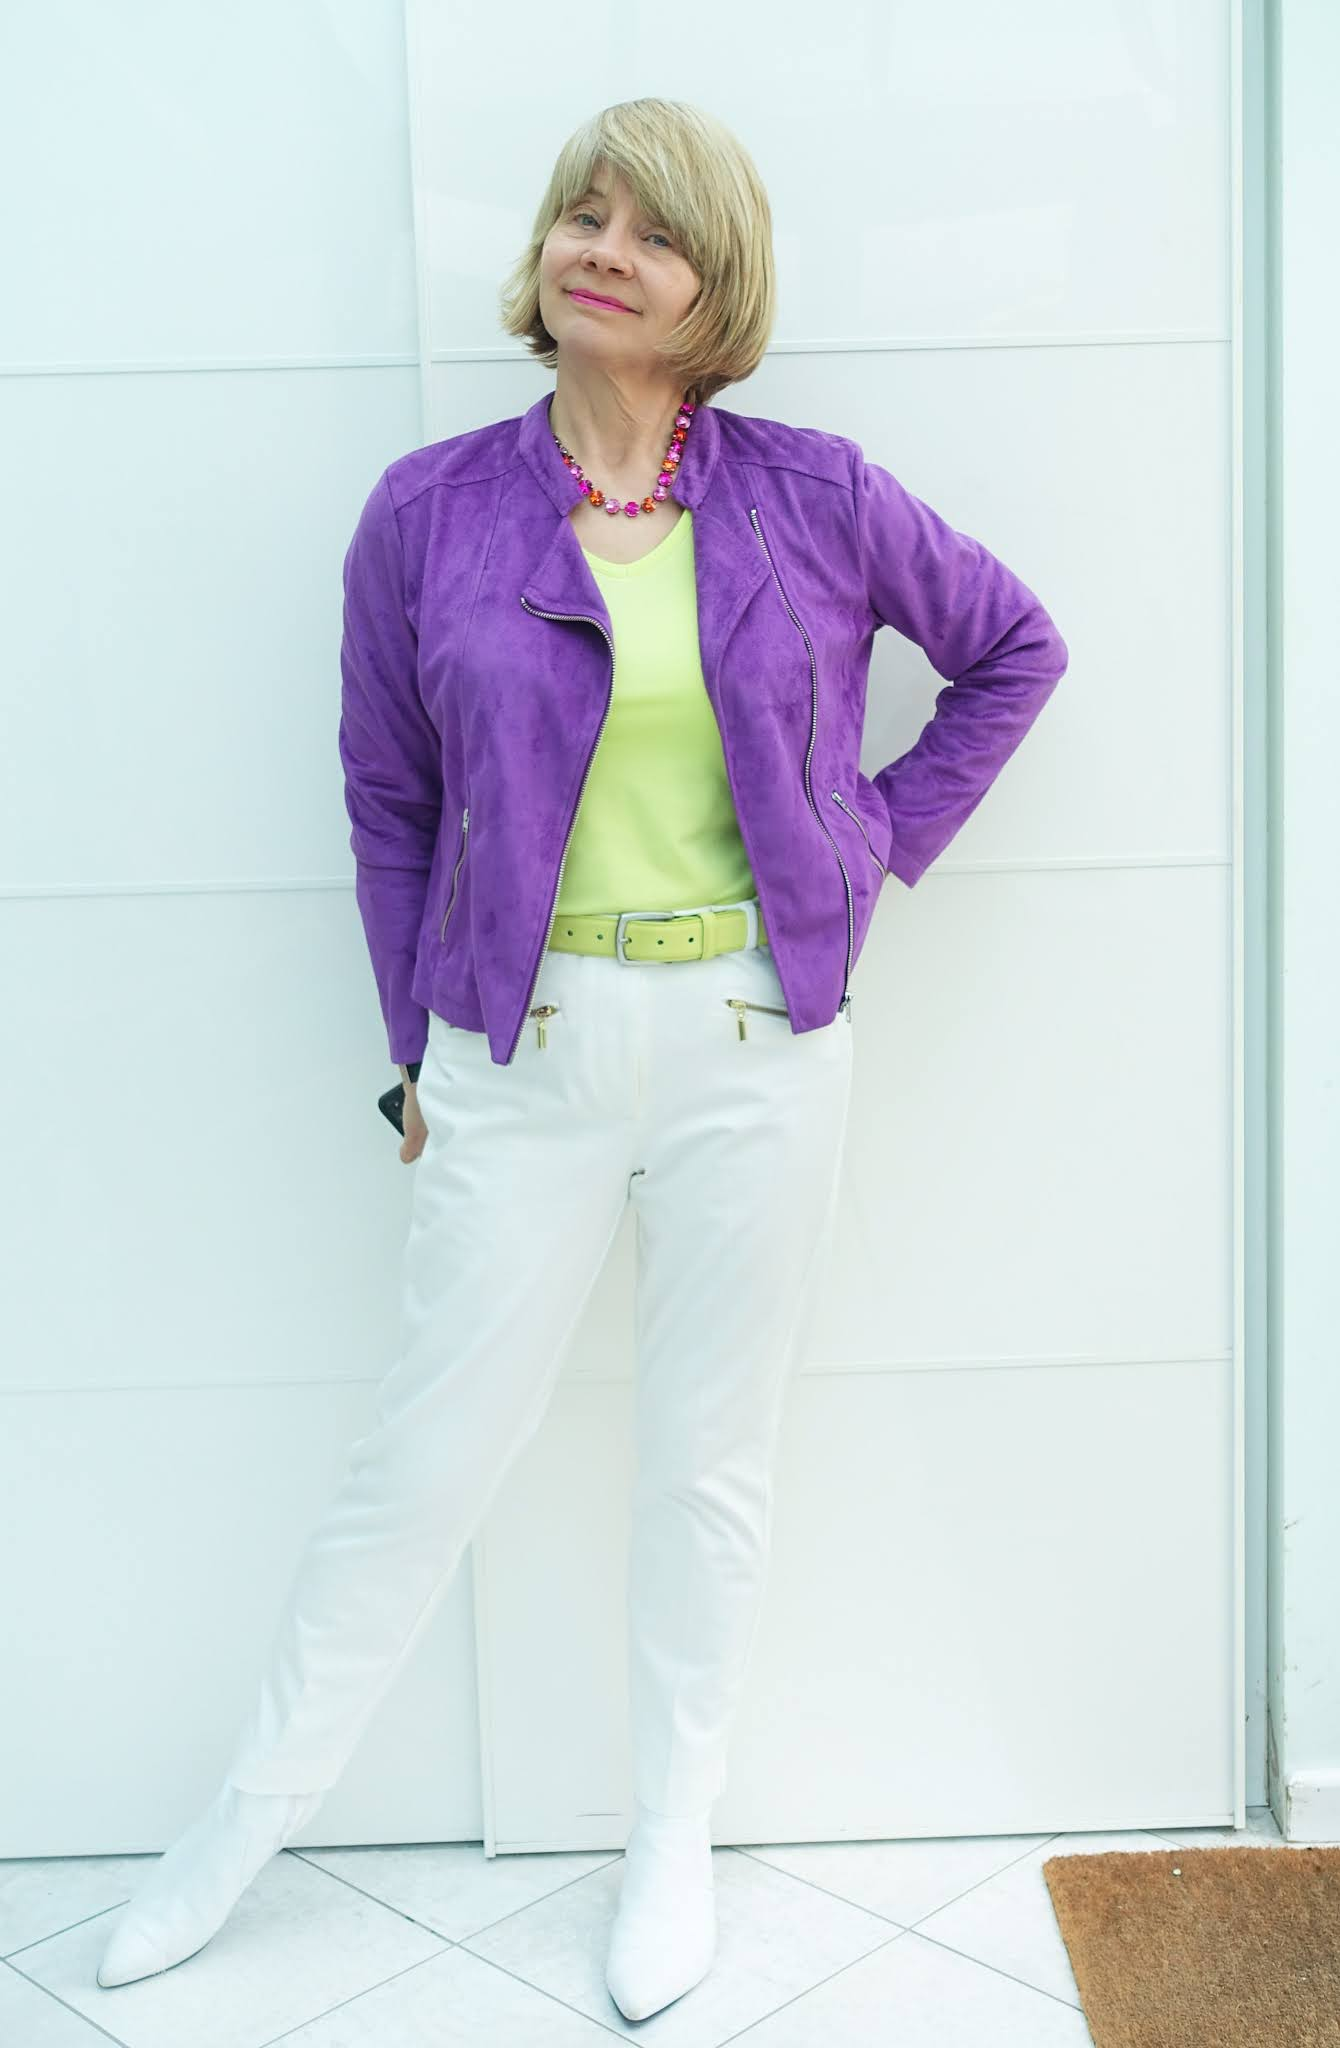 Pairing zingy acid yellow with bright violet and white: Is This Mutton blogger Gail Hanlon